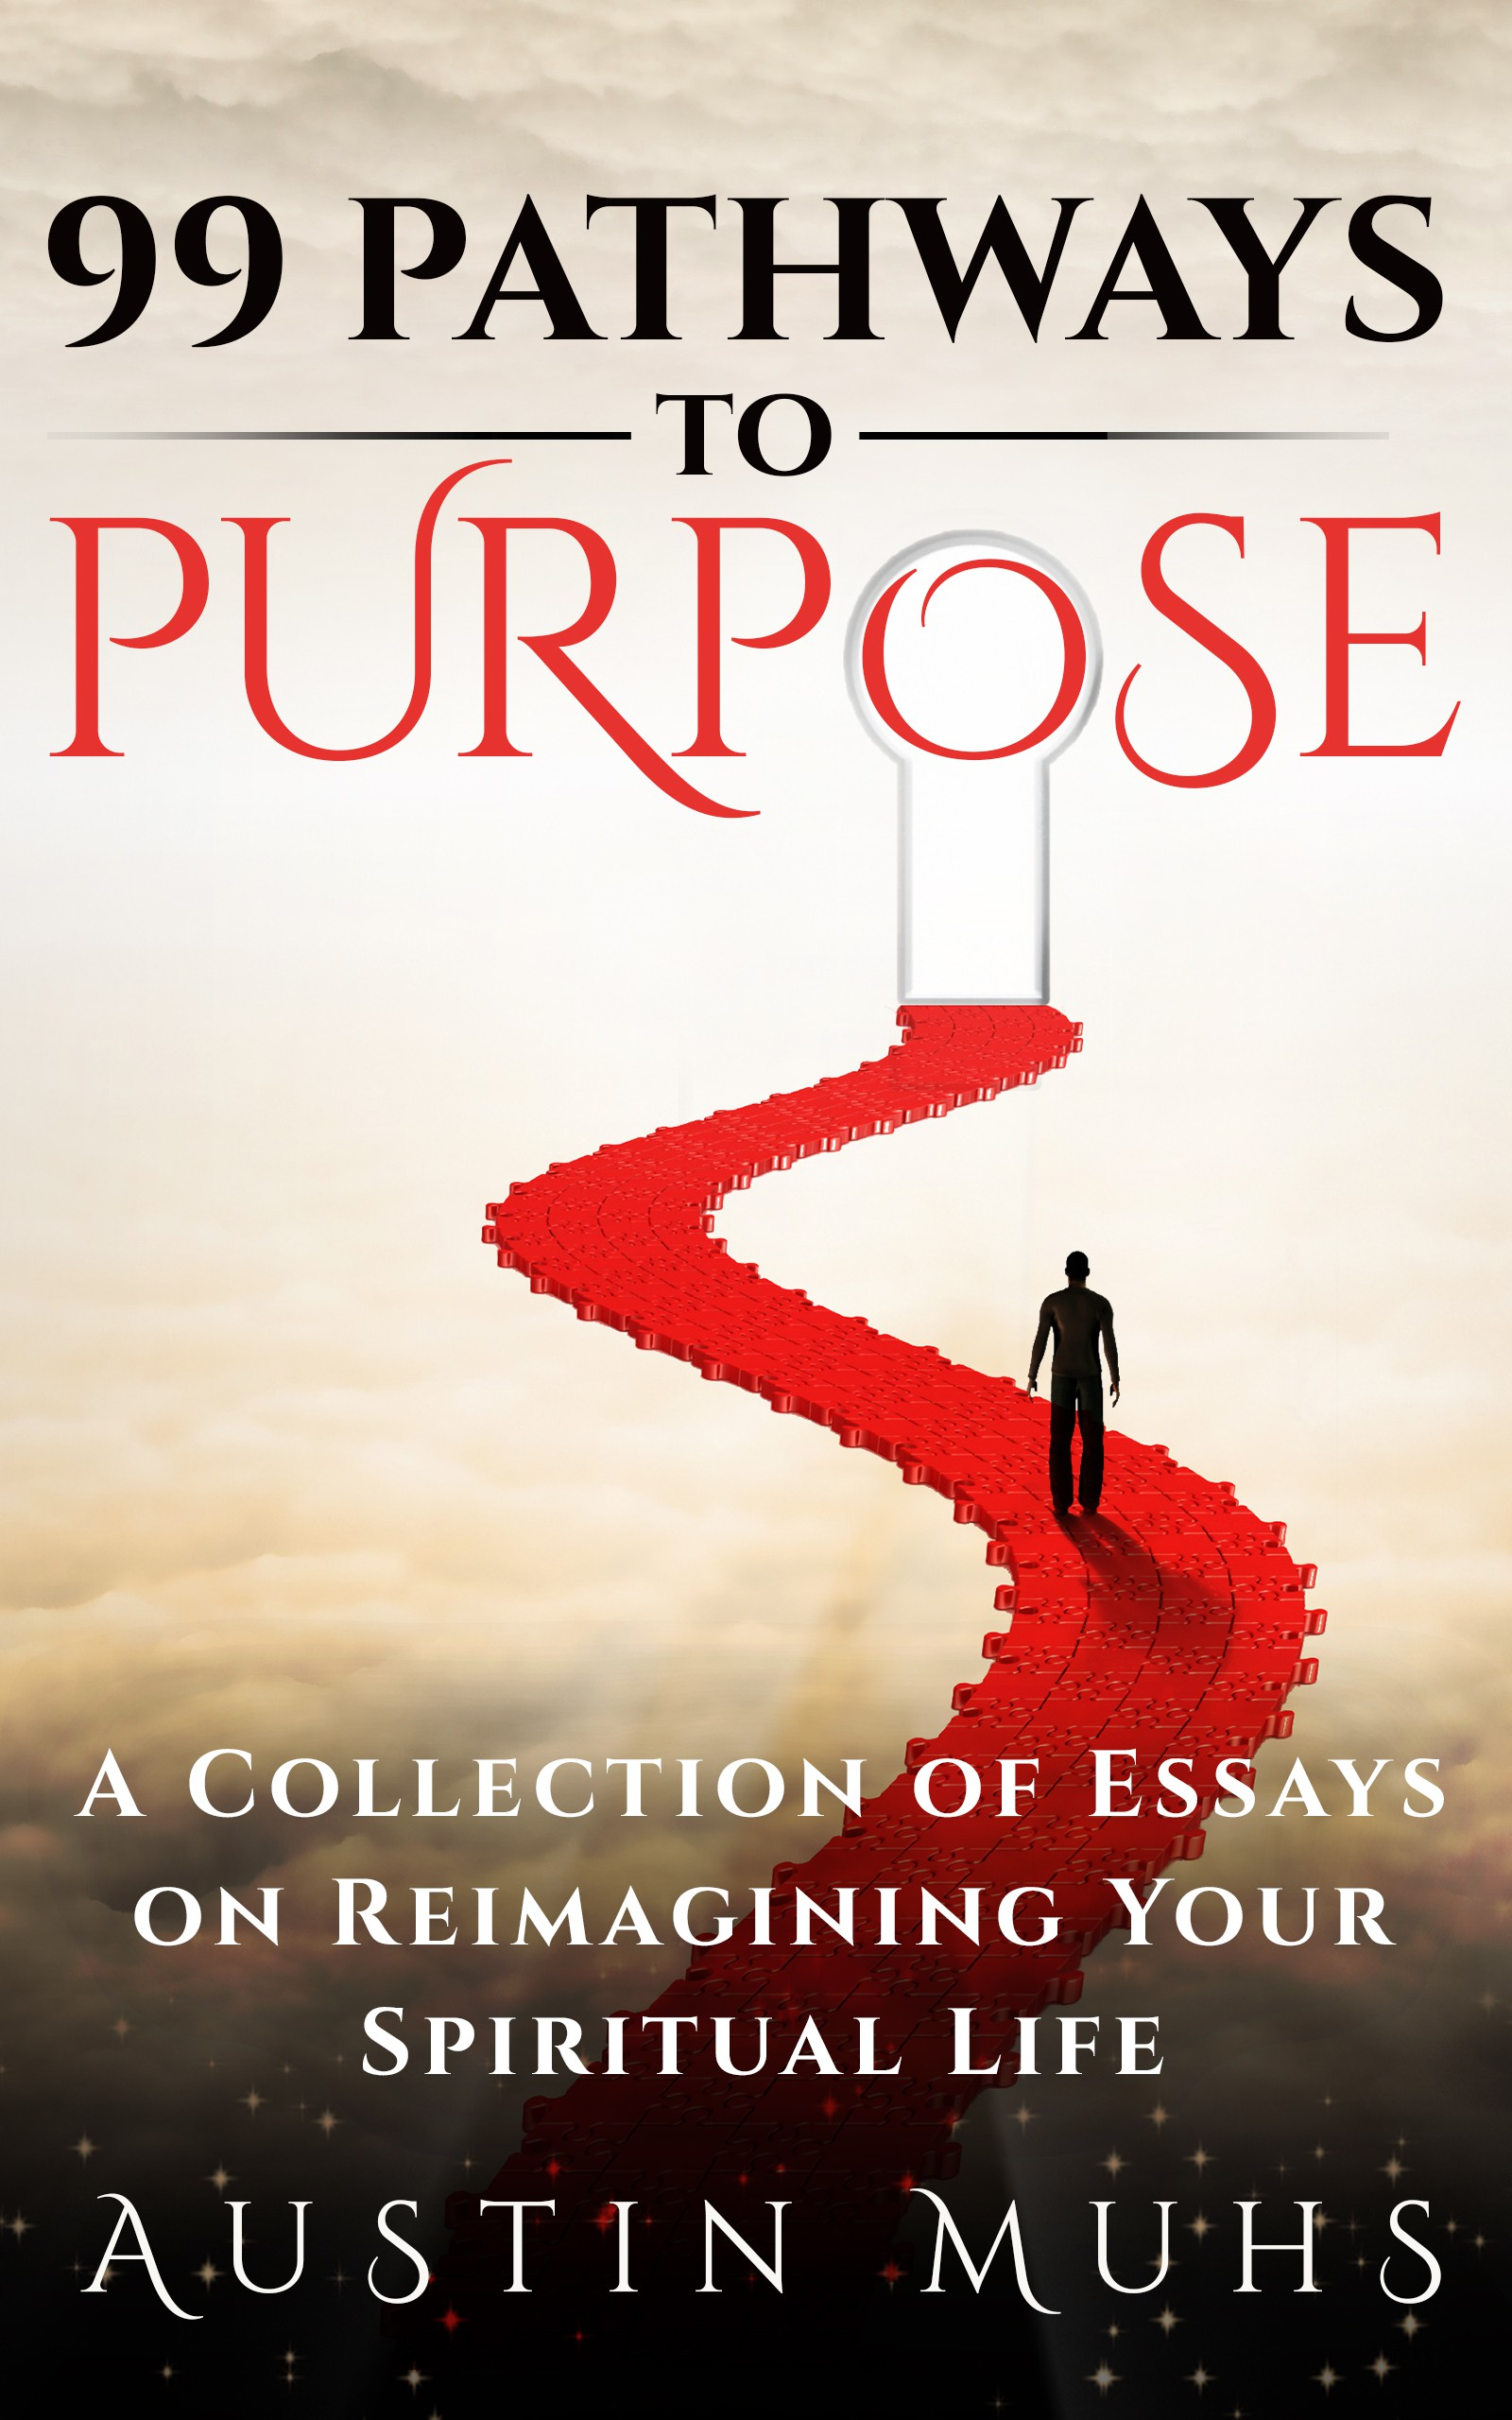 Ebook Version for 99 Pathways to Purpose